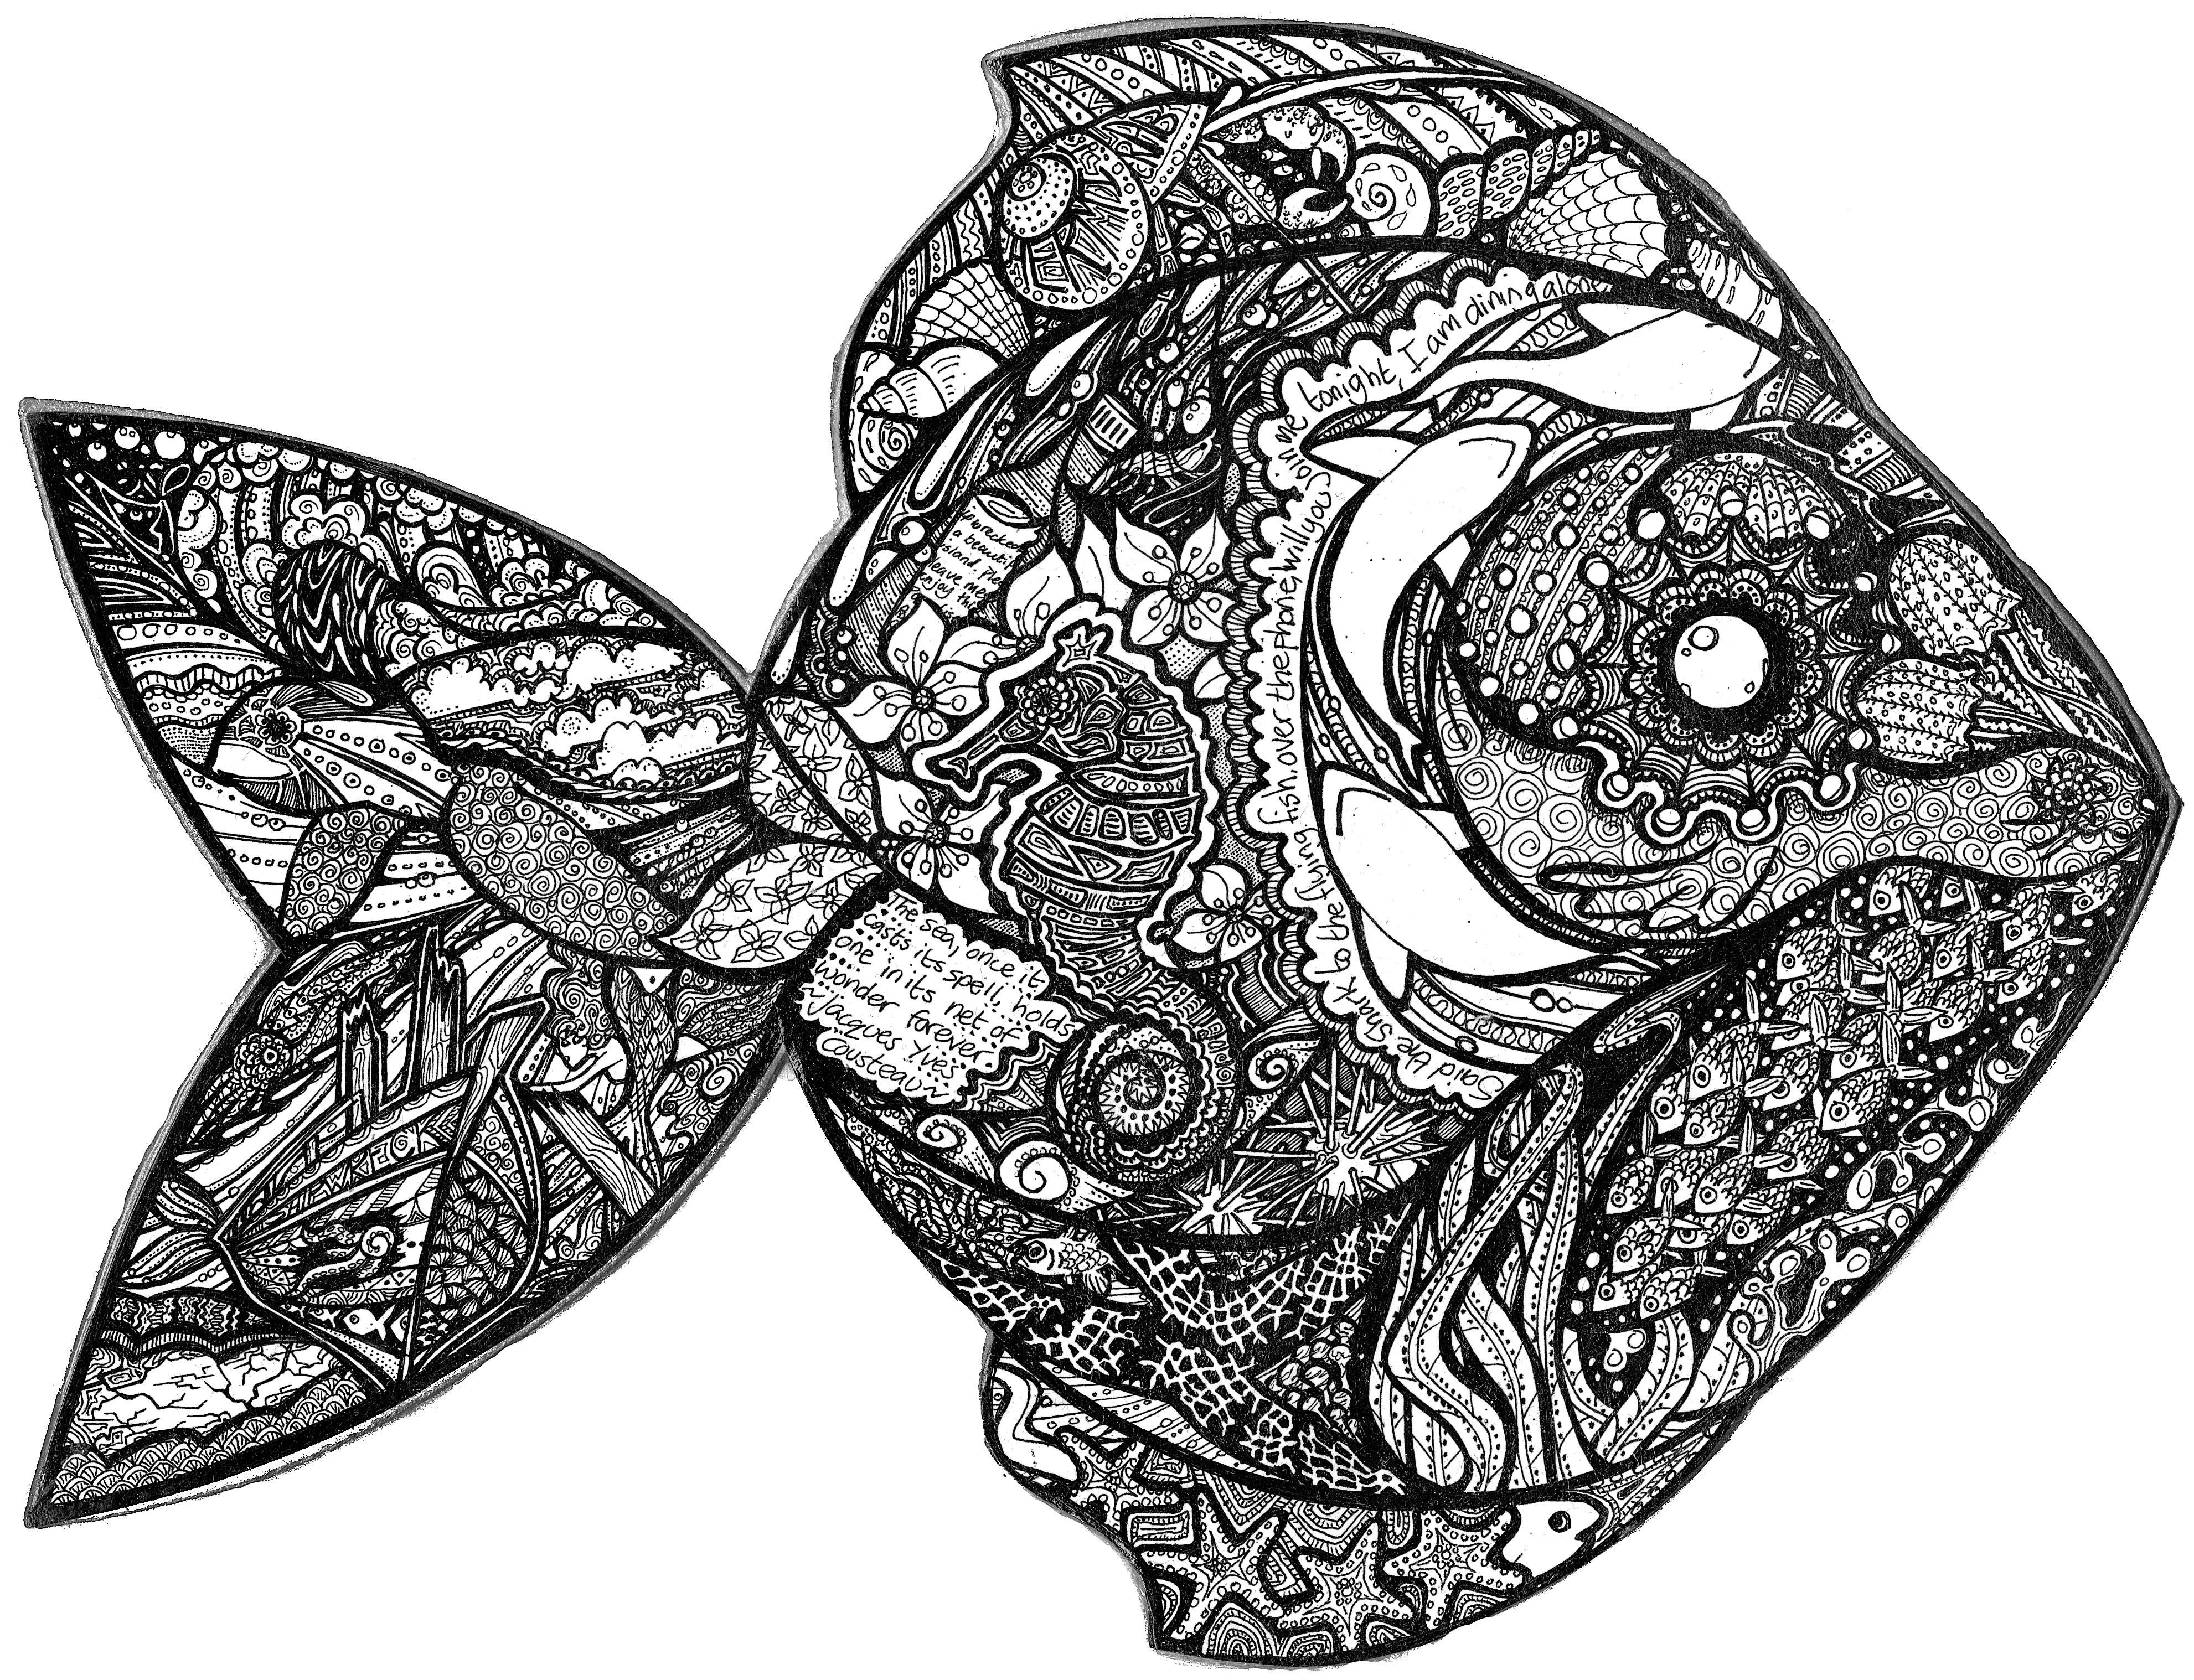 Pen & ink fish illustration with various marine wildlife, wreck and ...